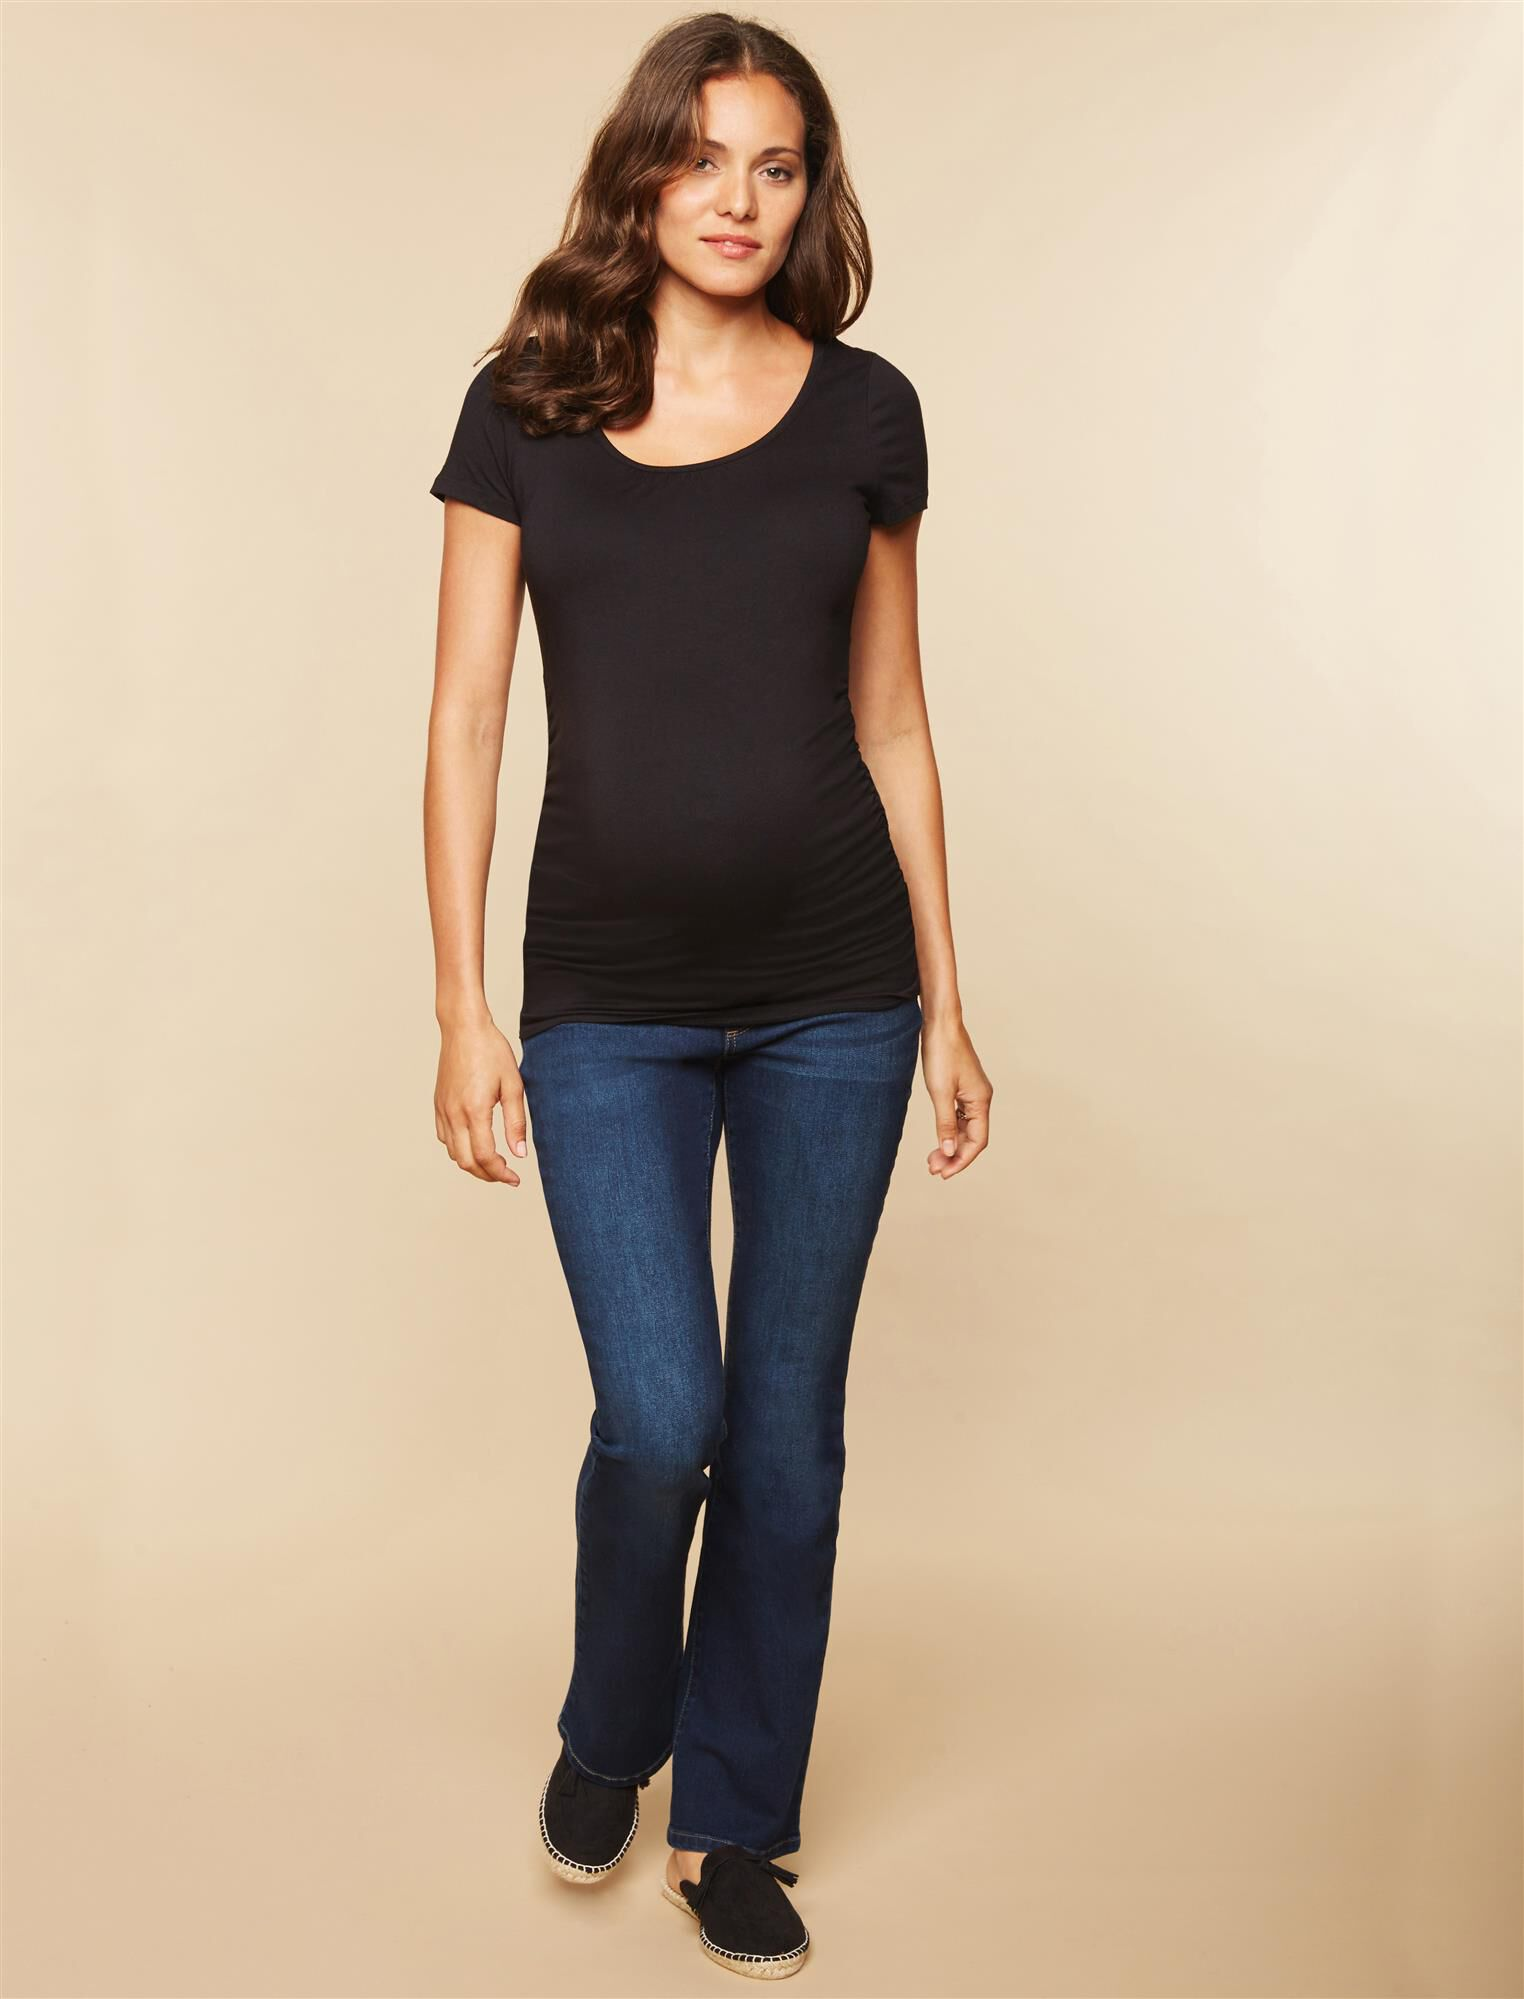 Long Secret Fit Belly Stretch Boot Cut Maternity Jeans